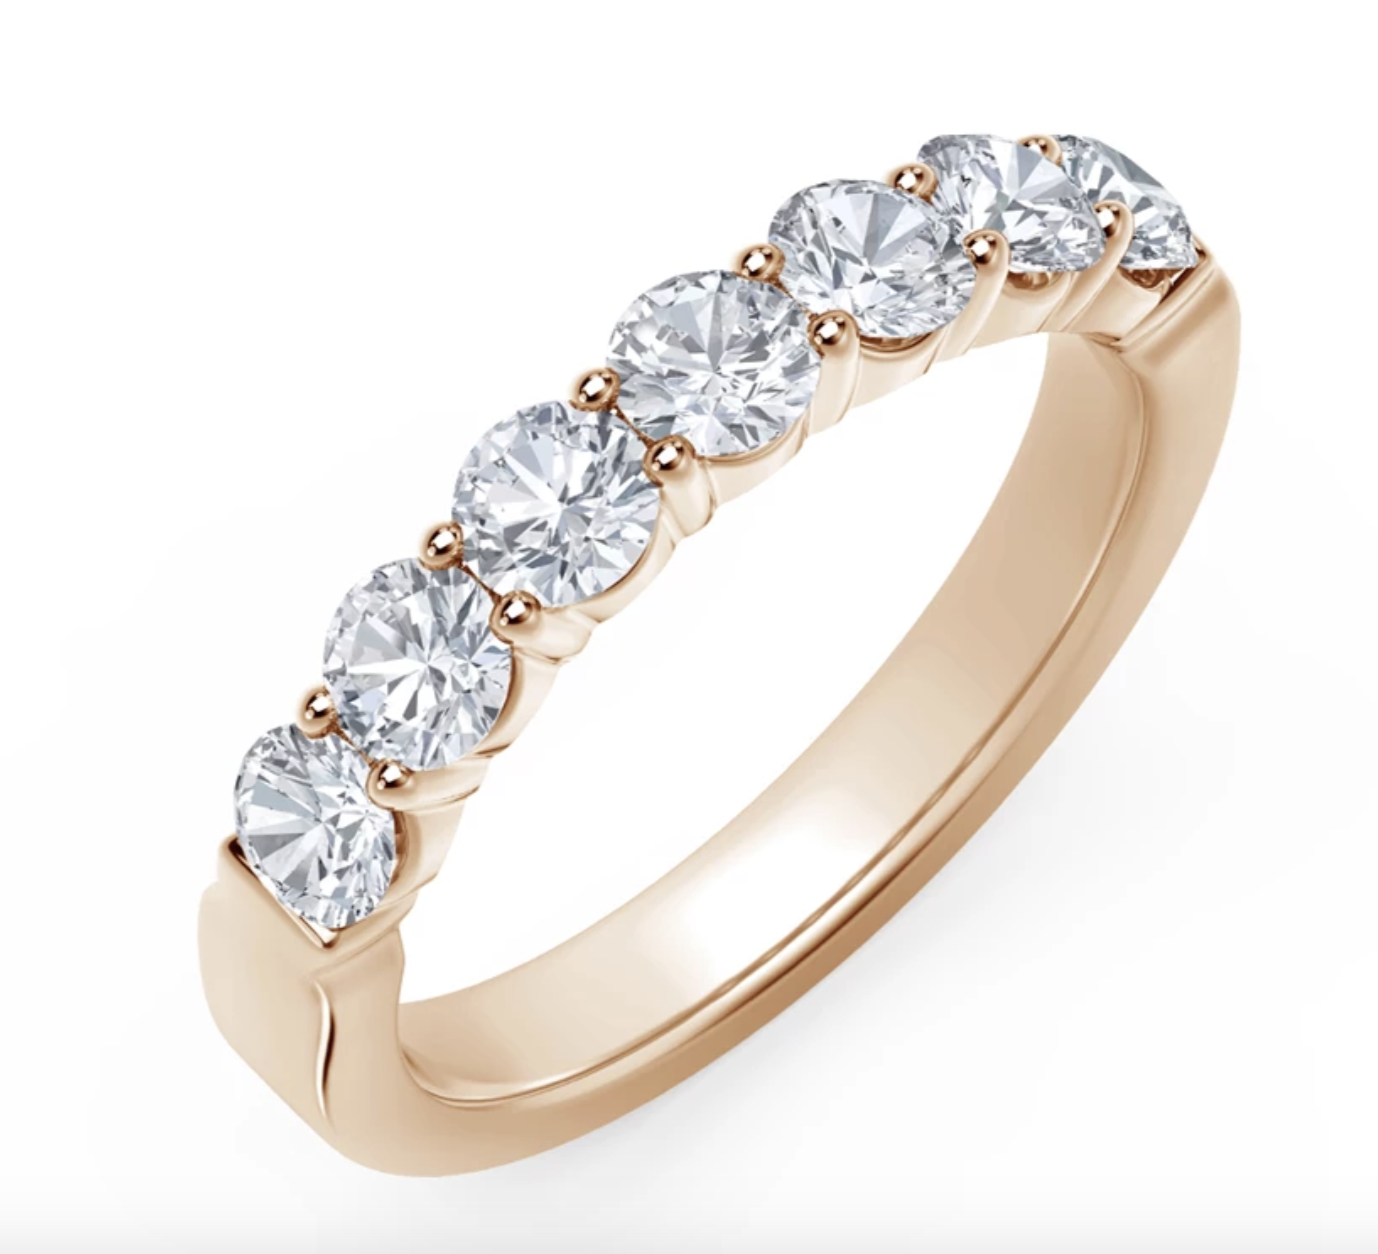 the gold band with seven circular diamonds